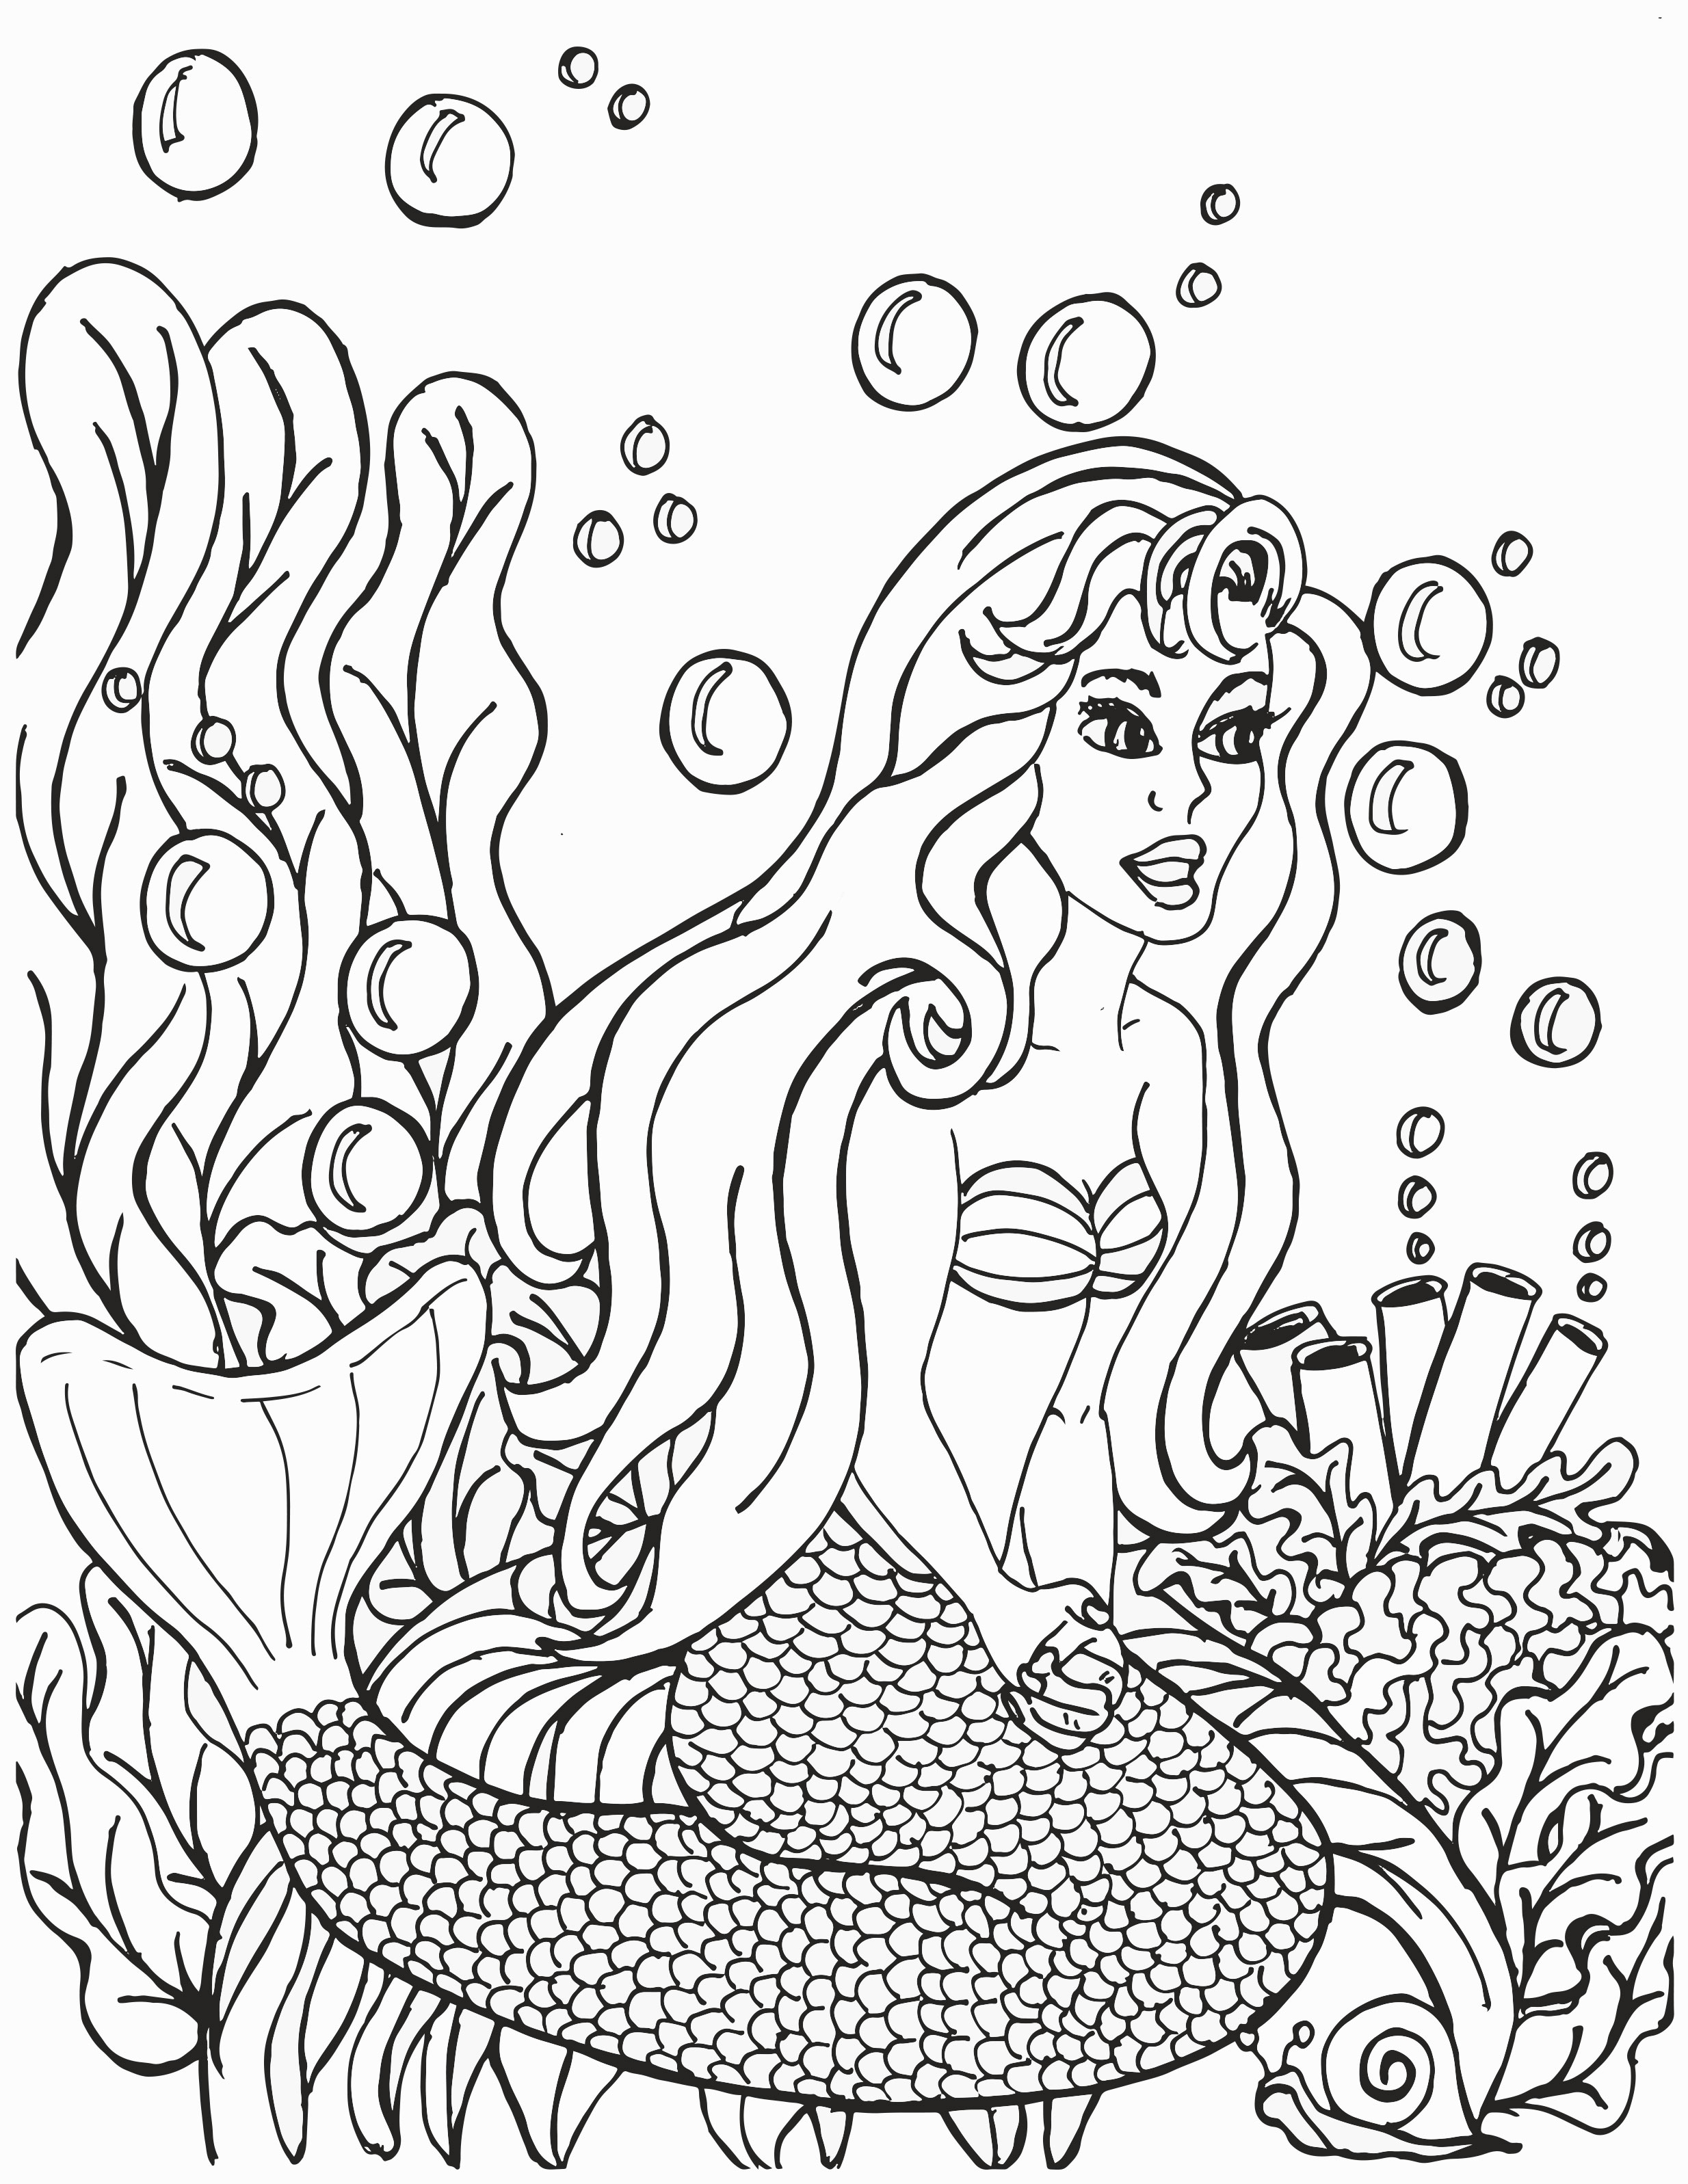 Kneeling Mermaid with Bubble and Plants Coloring Page